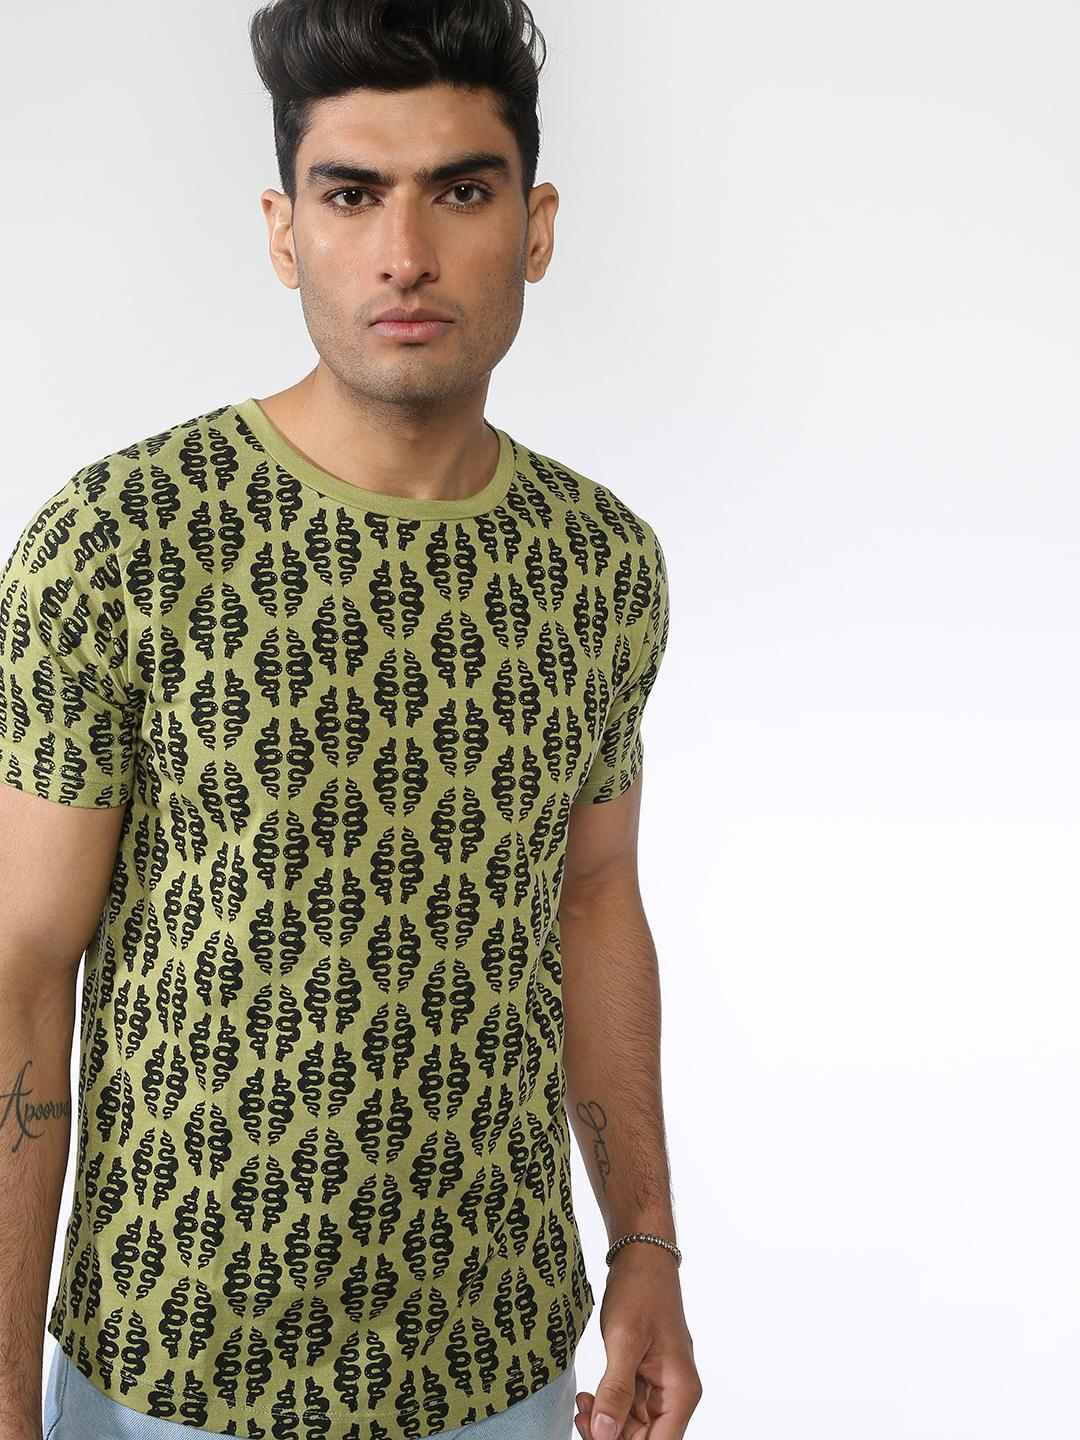 IMPACKT Olive All Over Printed T-shirts 1